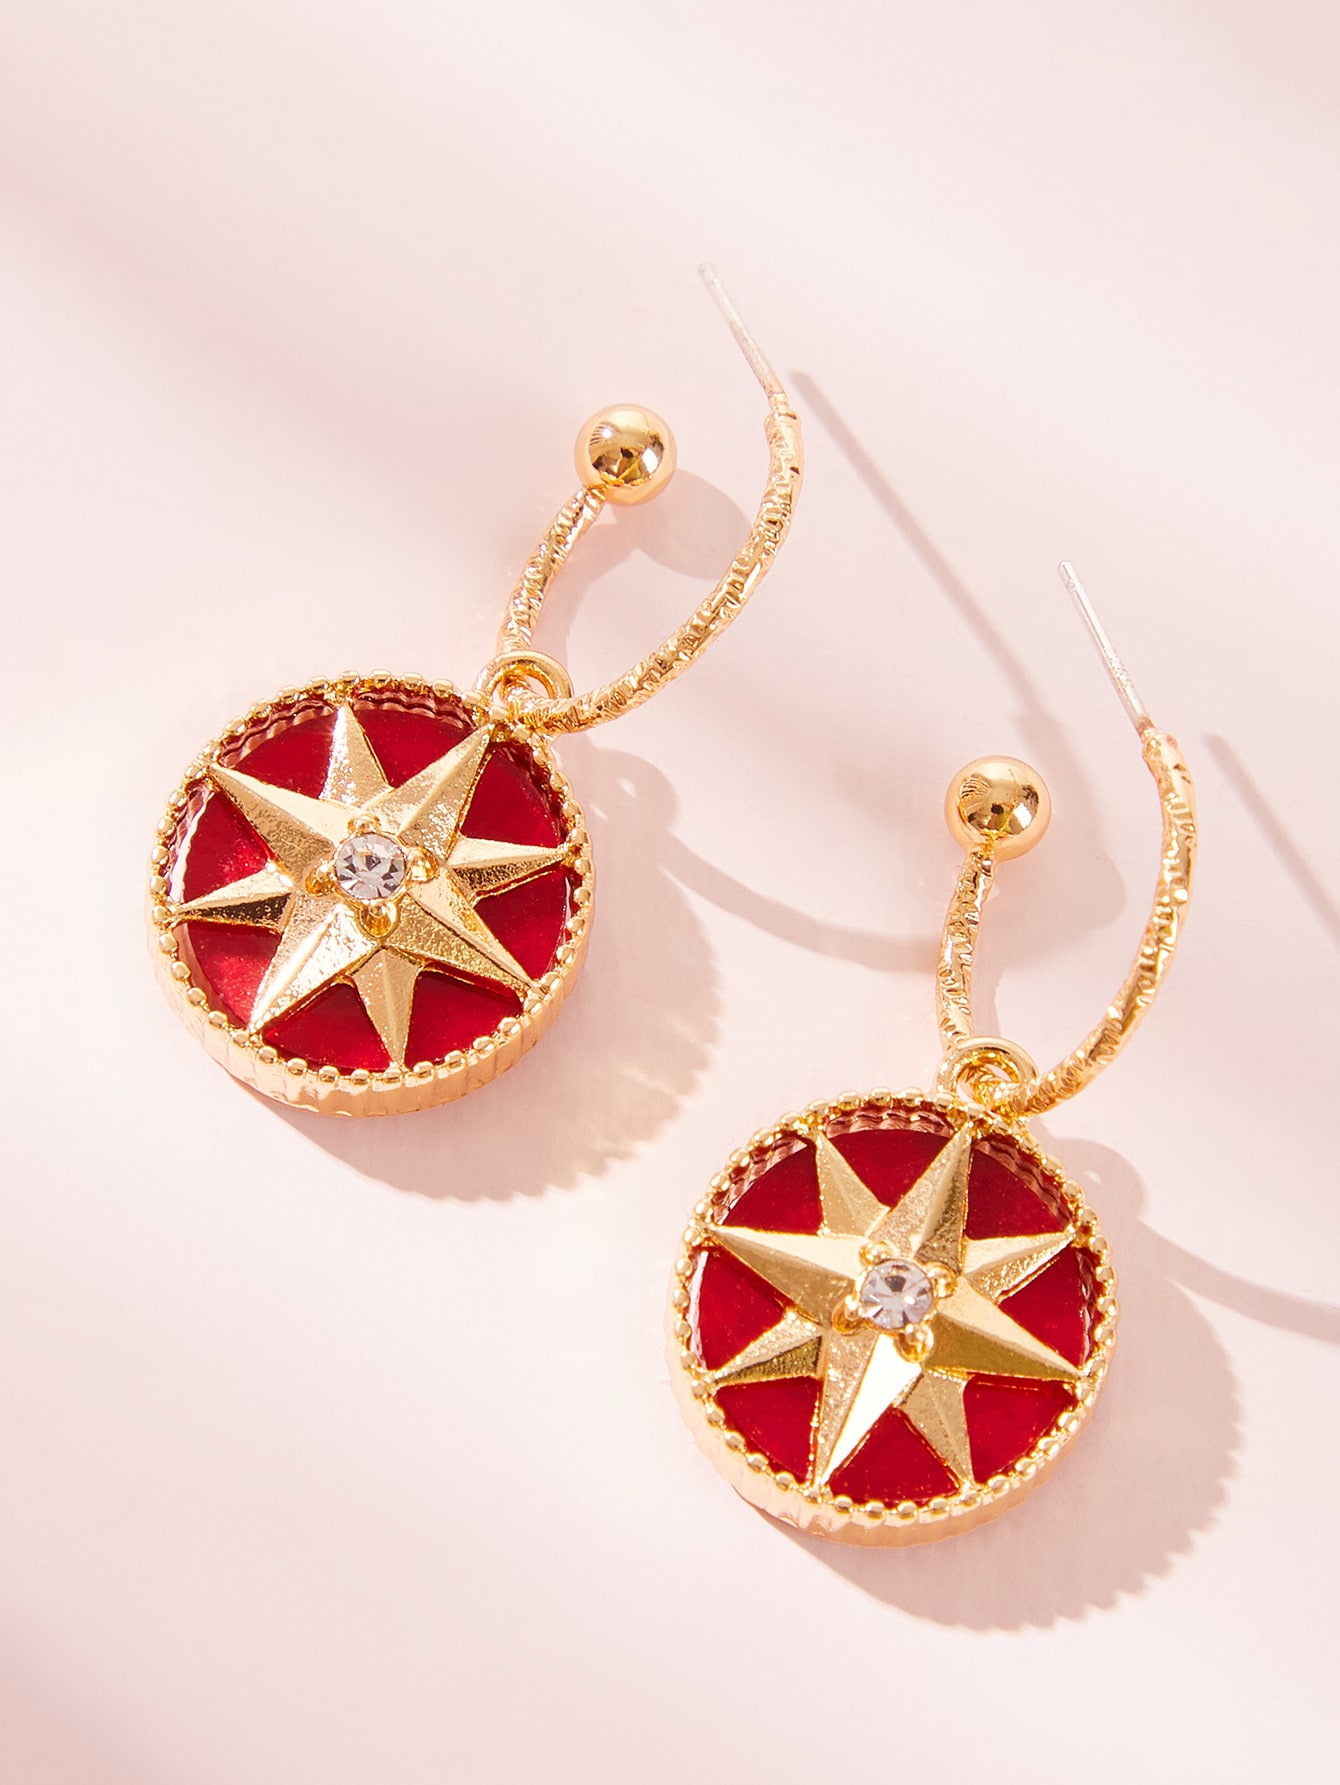 Ring Decor Star Engraved Round Drop Earring 1pair